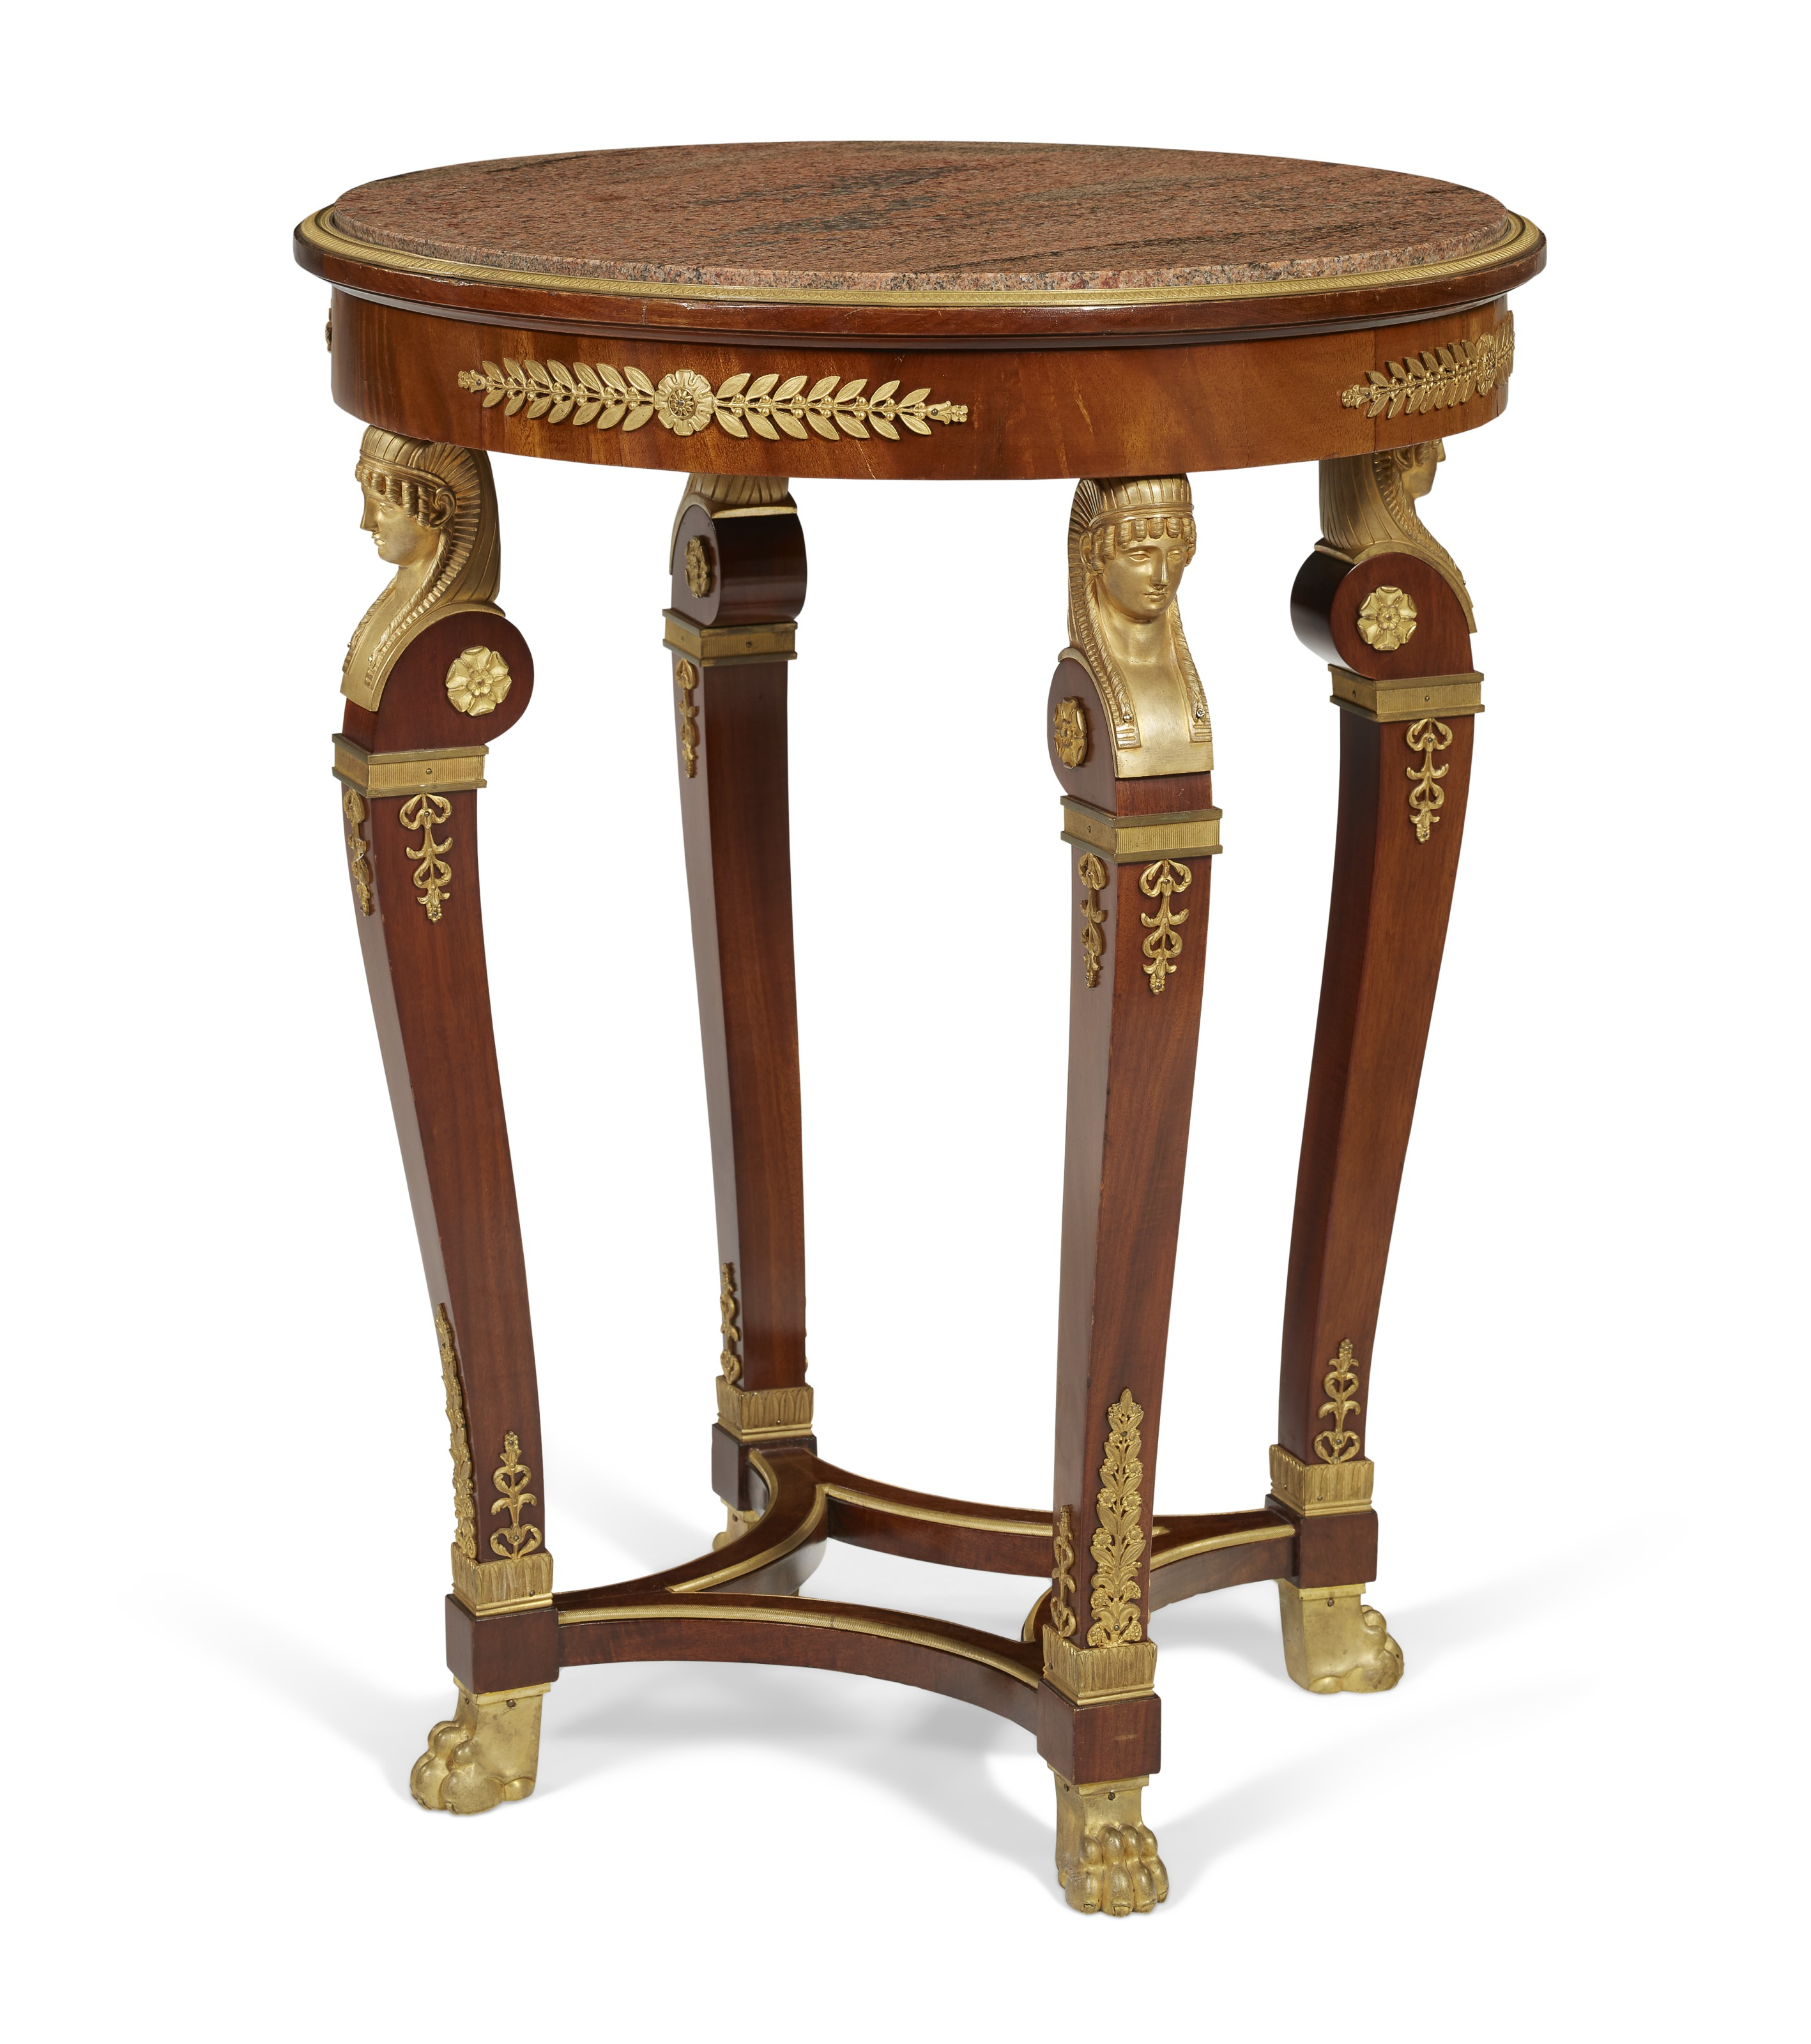 A French ormolu-mounted mahogany gueridon, late 19th century. 30  in (76.2  cm) high, 23½  in (59.6  cm) diameter. Estimate $3,000-5,000. Offered in The Collector English & European Furniture, Ceramics, Silver & Works of Art on 5-19 October 2021 at Christie's Online